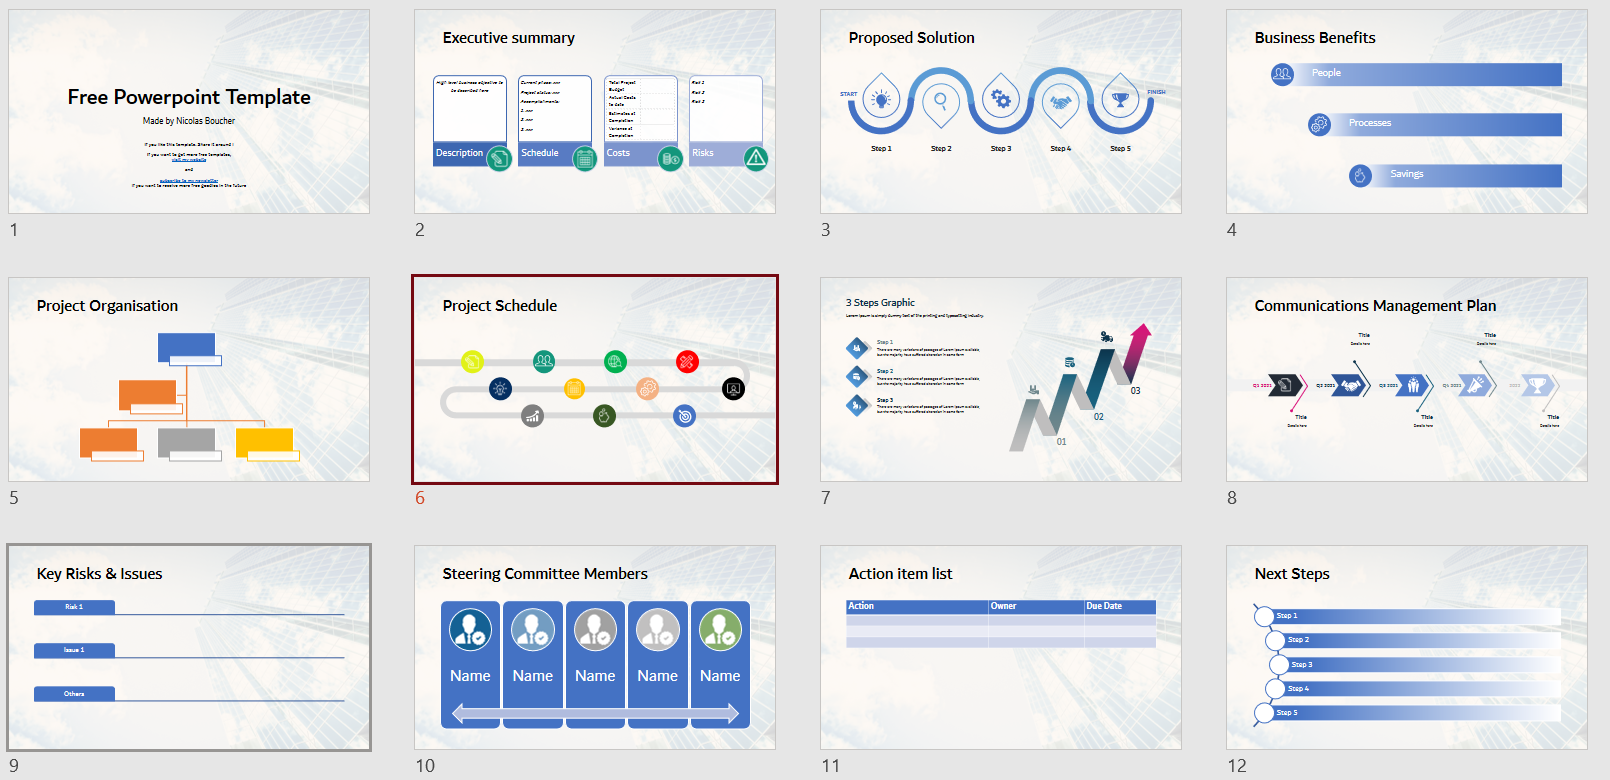 Free Powerpoint Template To Help You Make Presentations More Professional Nicolas Boucher